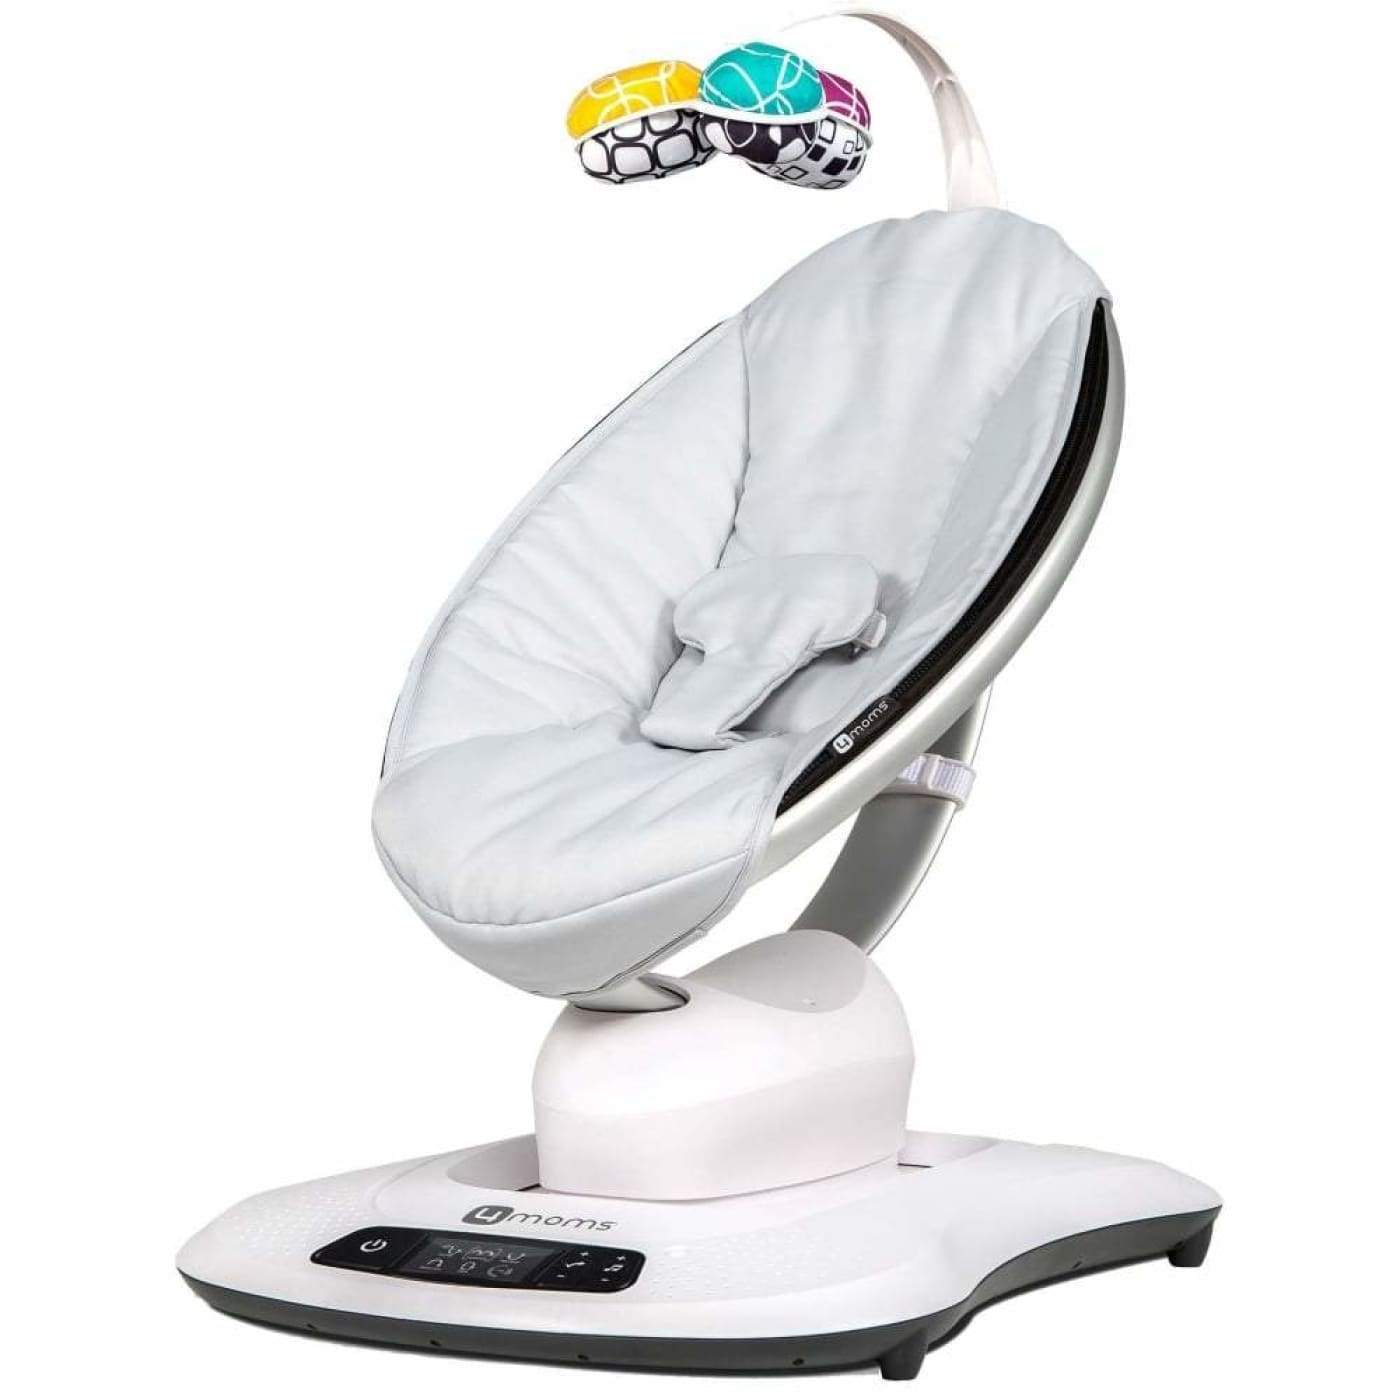 4Moms Mamaroo 4.0 - Grey - TOYS & PLAY - SWINGS